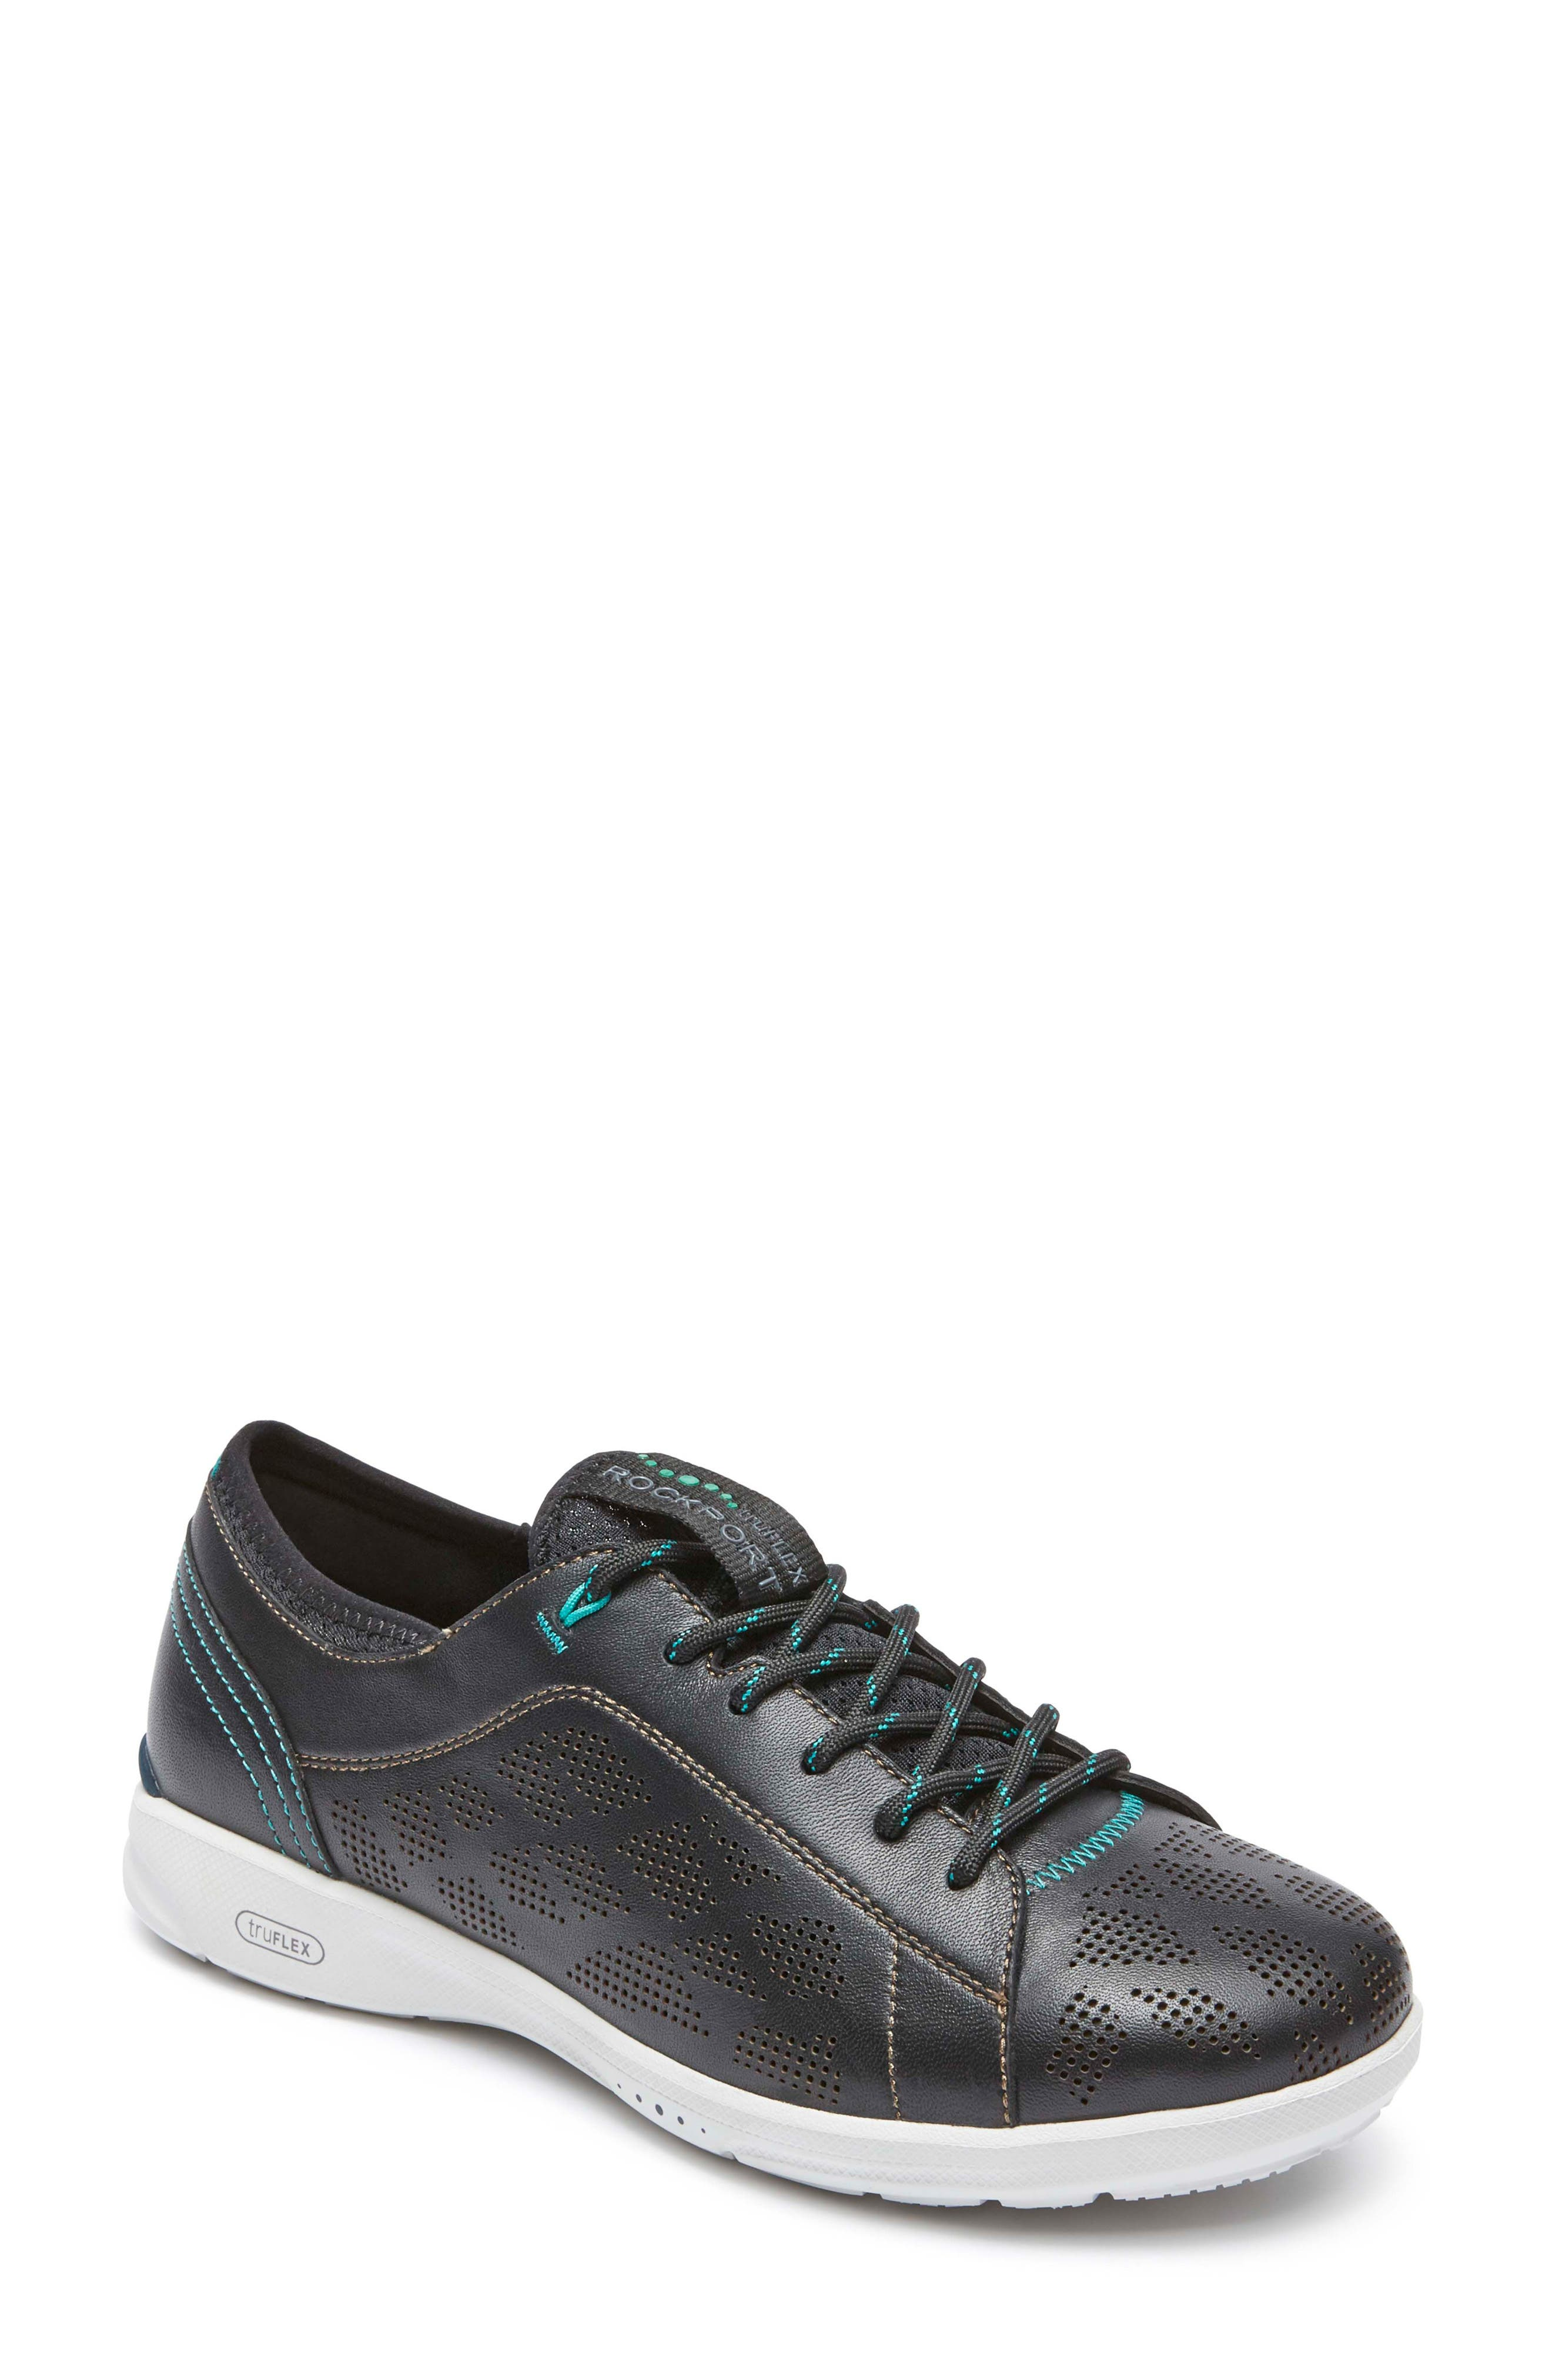 truFLEX Perforated Sneaker,                             Main thumbnail 1, color,                             BLACK LEATHER